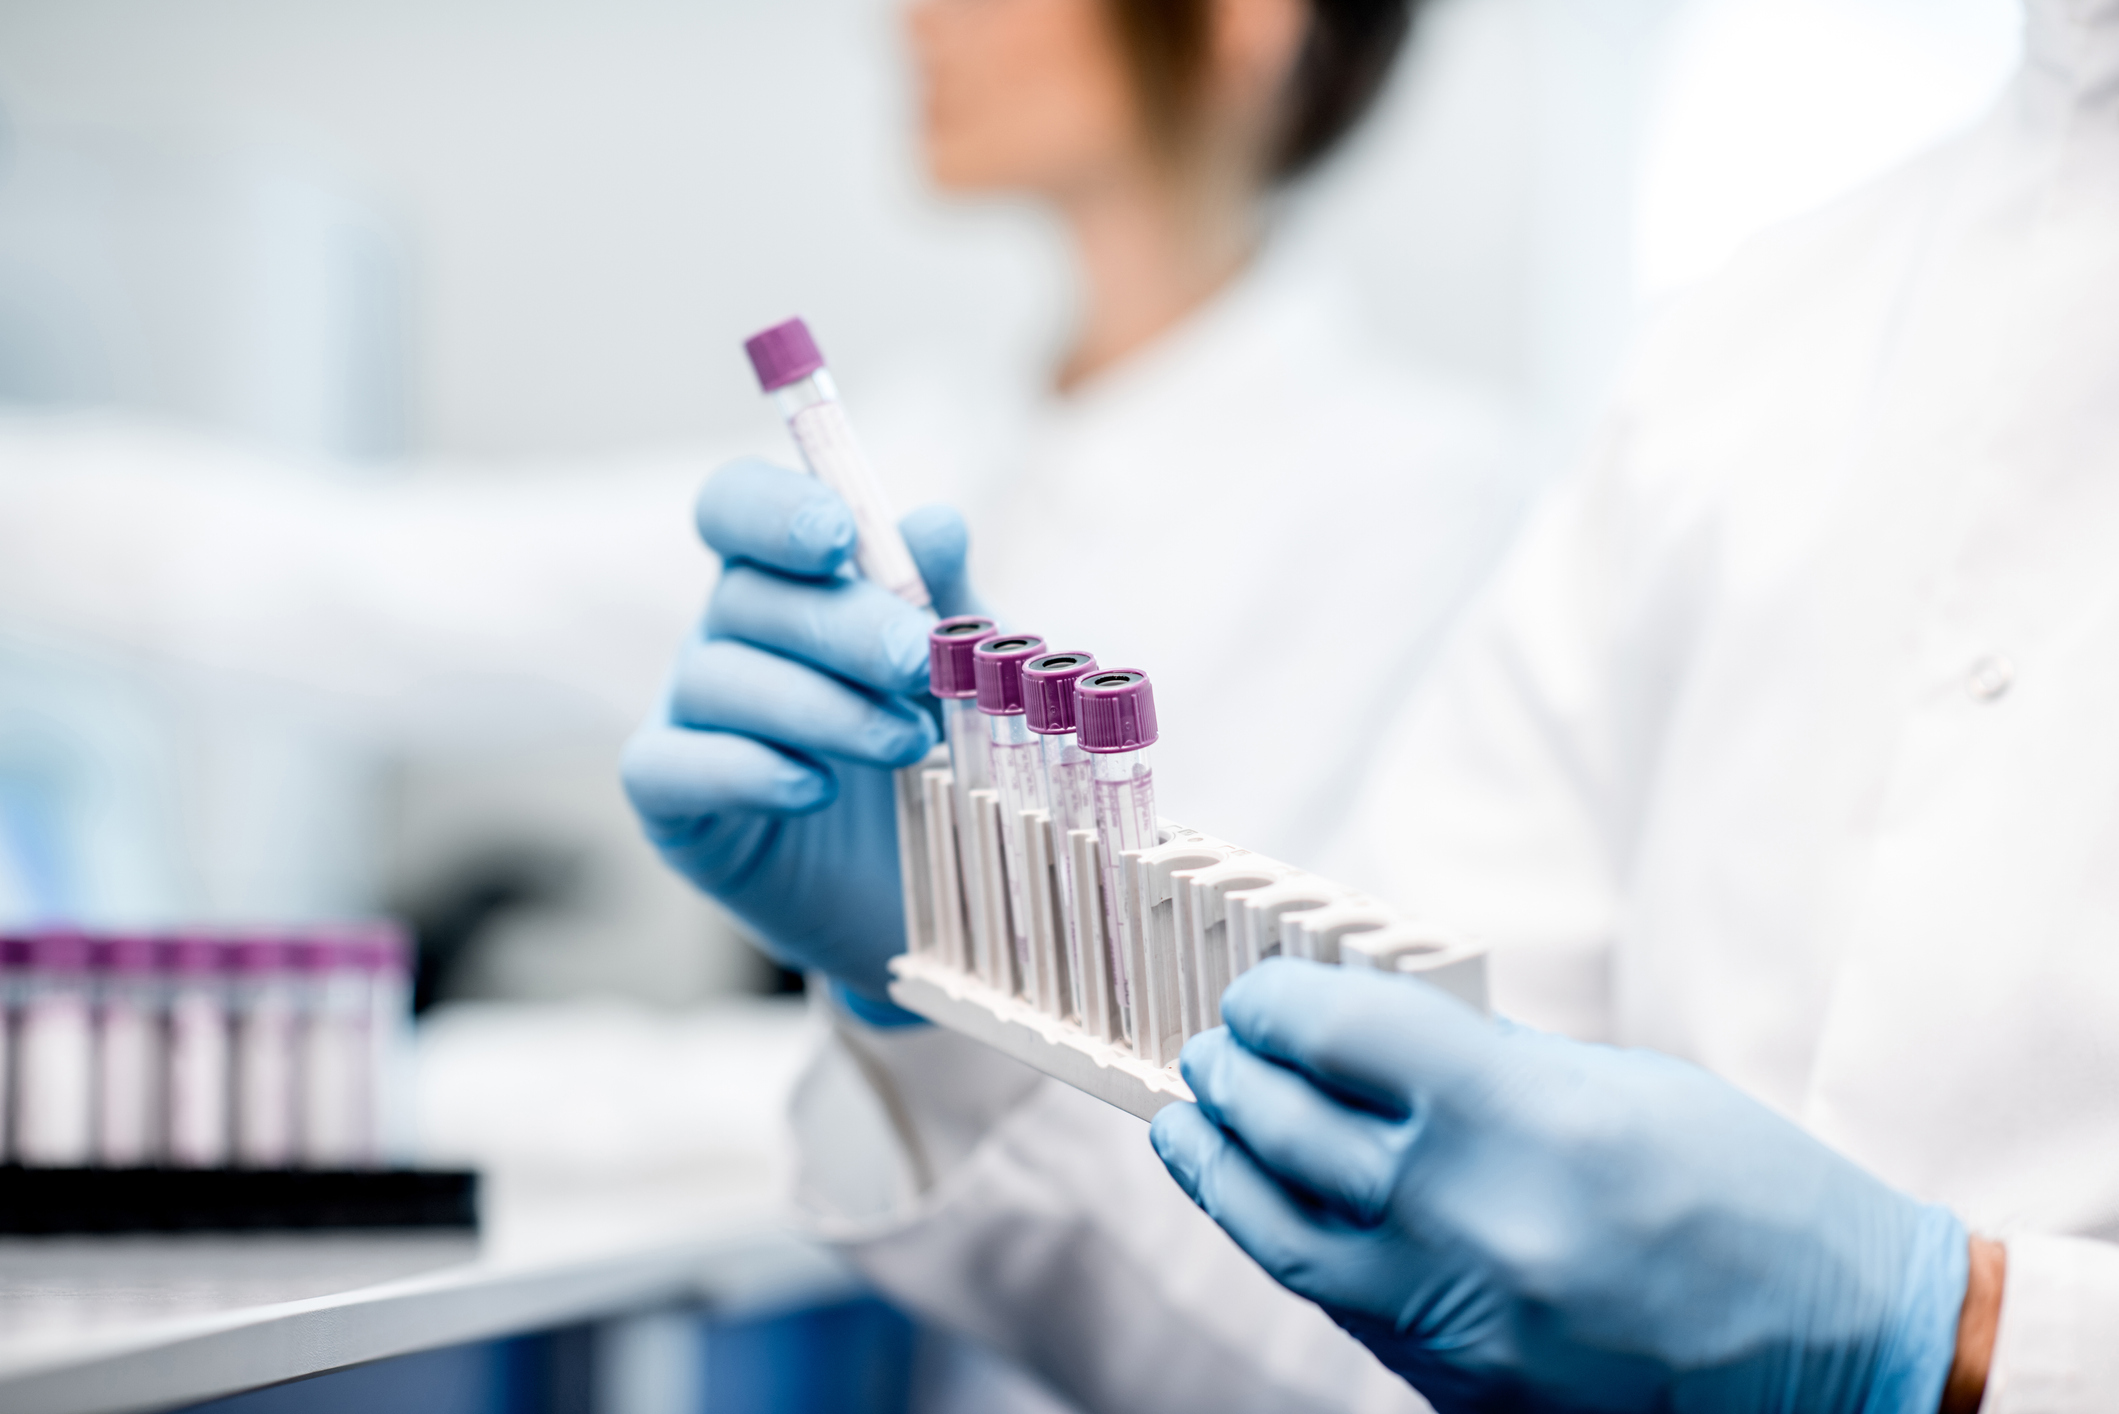 Top 10 Bio and Pharma Tech Clinical Research Organizations in 2019